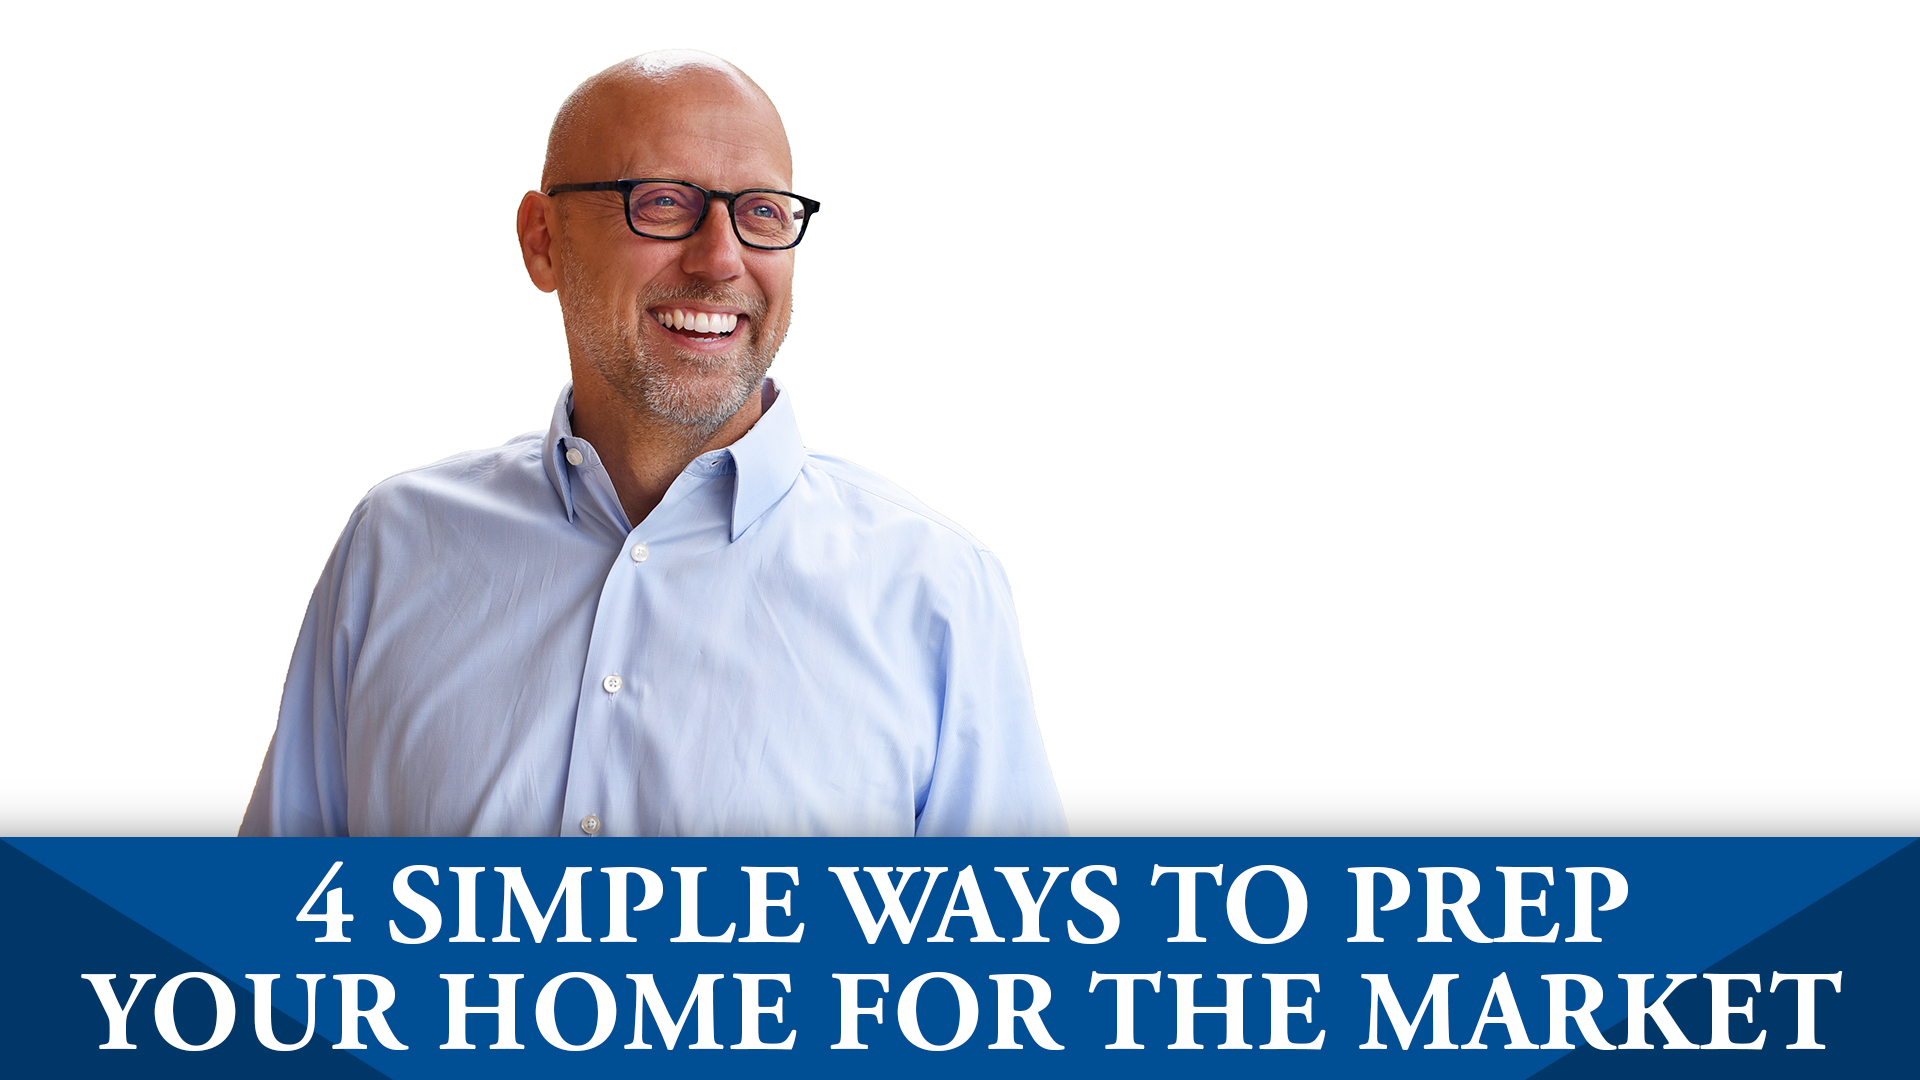 4 Simple Tips to Prepare Your Home for the Market